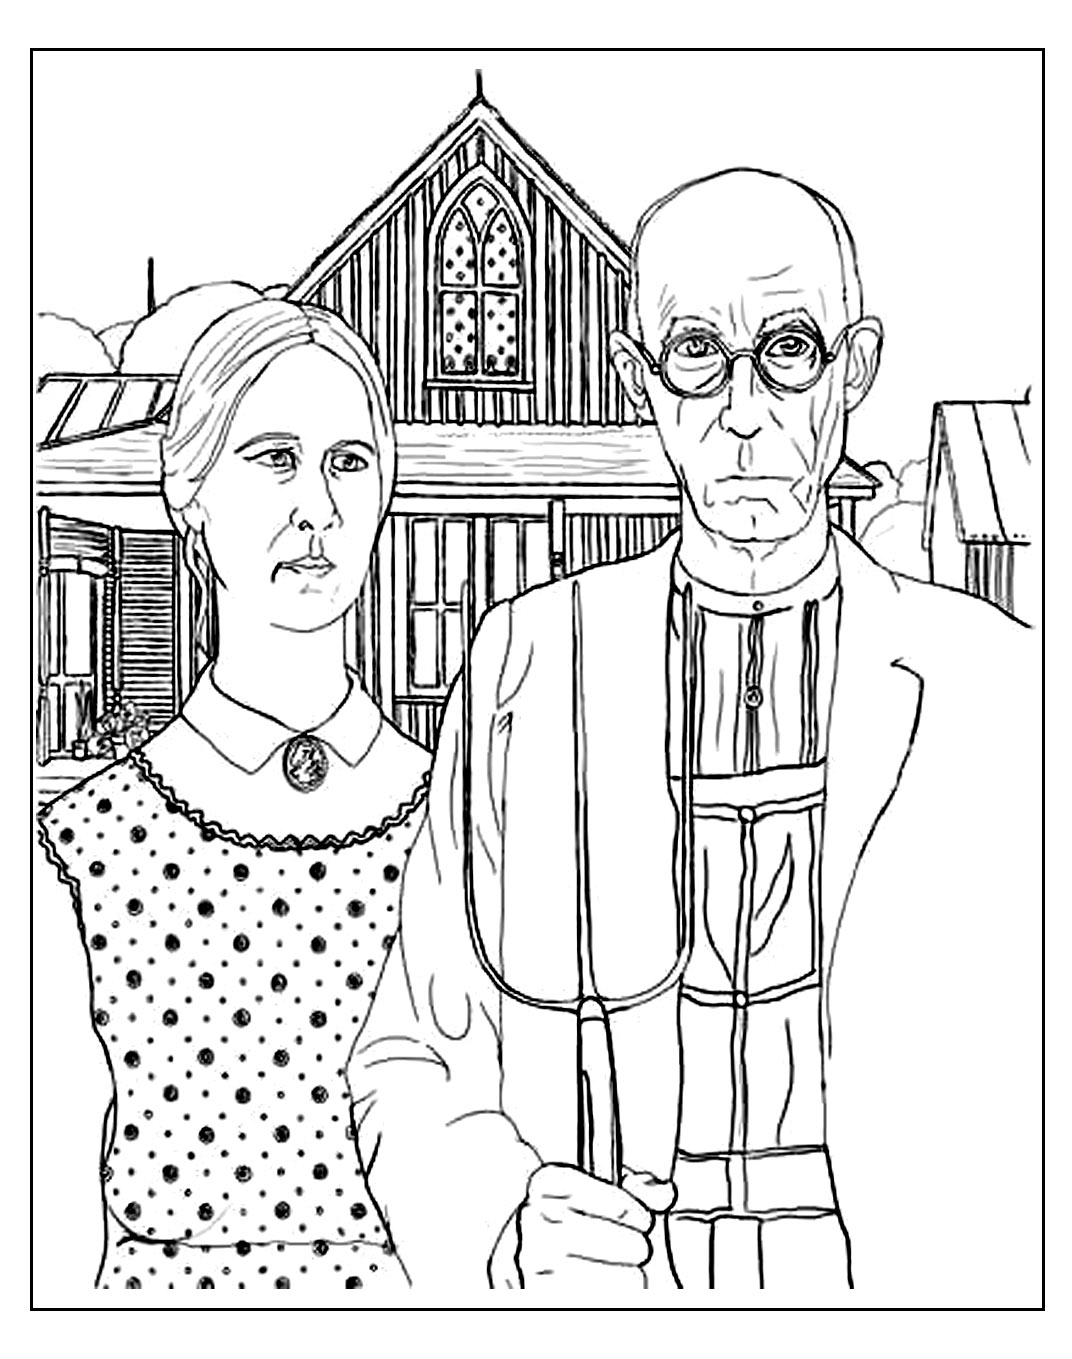 Coloring page for adult of American Gothic, the famous painting by Grant Wood, depicting the rural american midwest